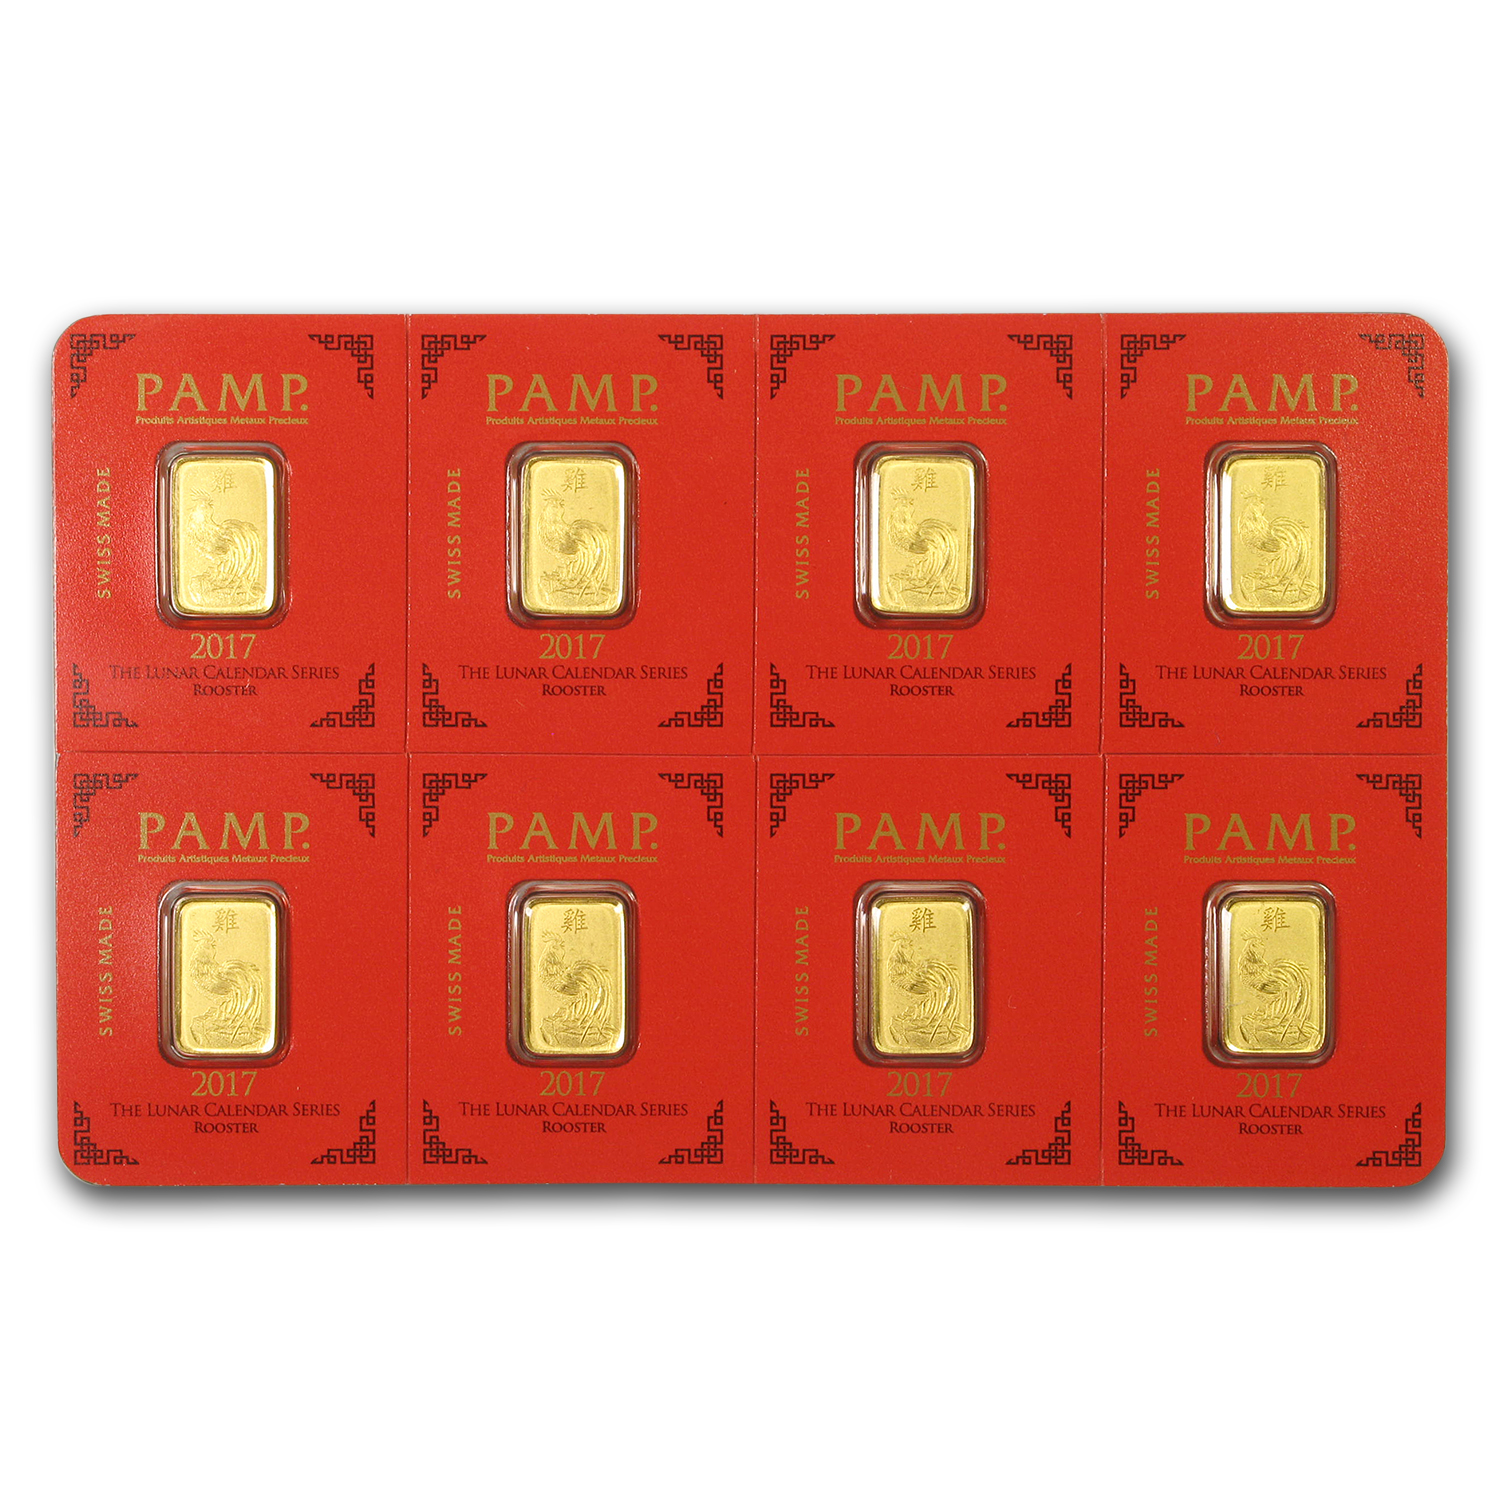 8x 1 gram Gold Bar PAMP Suisse Rooster Multigram+8 (In Assay)